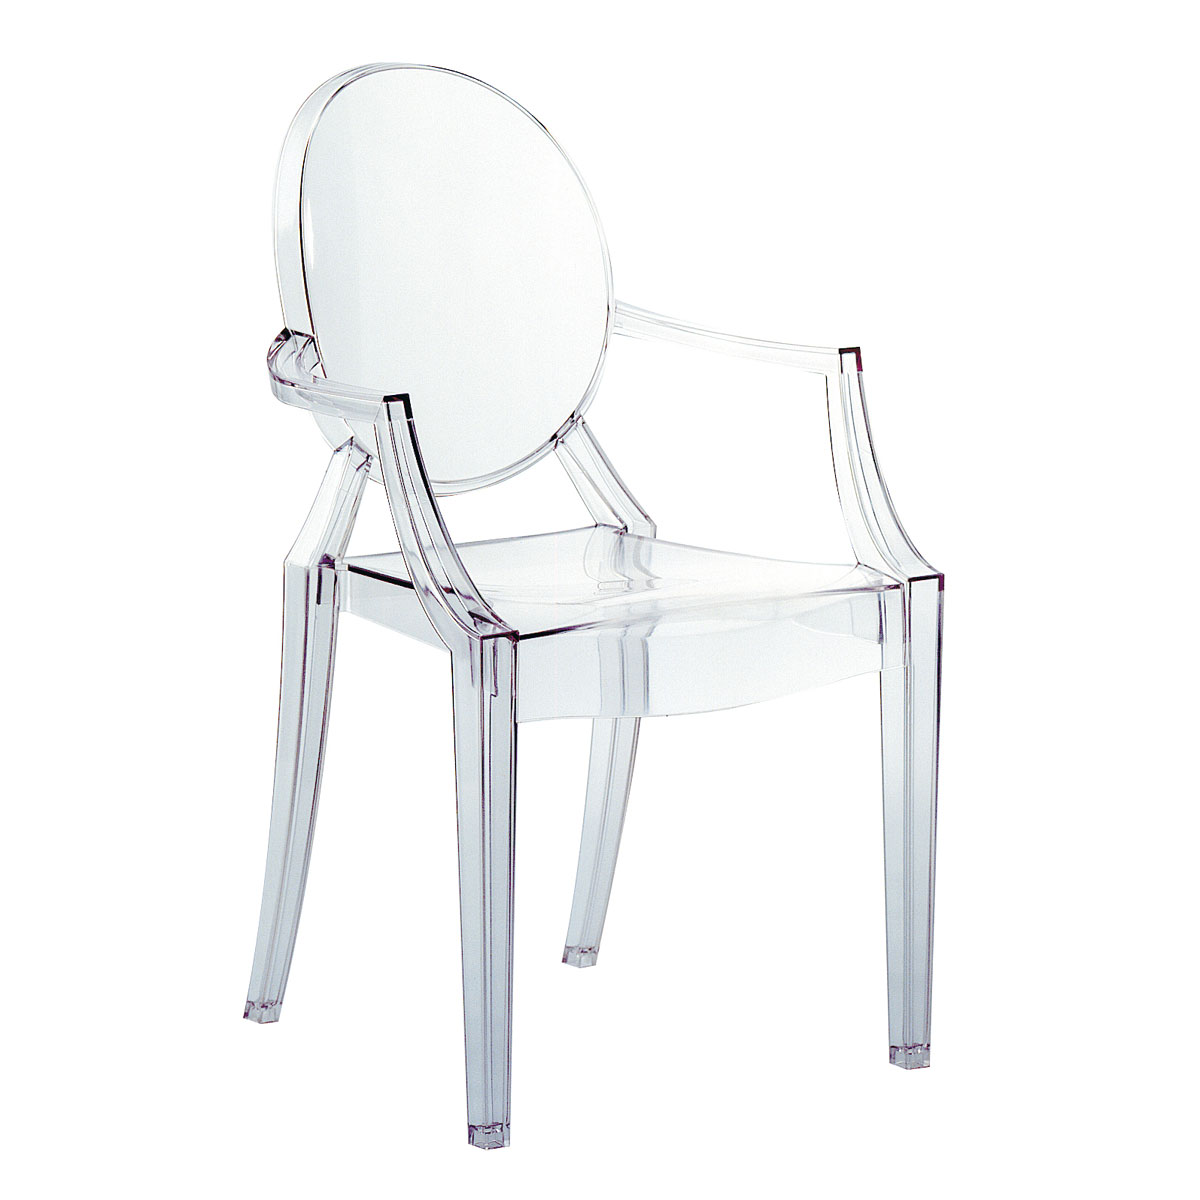 Silla Louis Ghost Kartell Louis Ghost Silla Transparente Cristal 4853